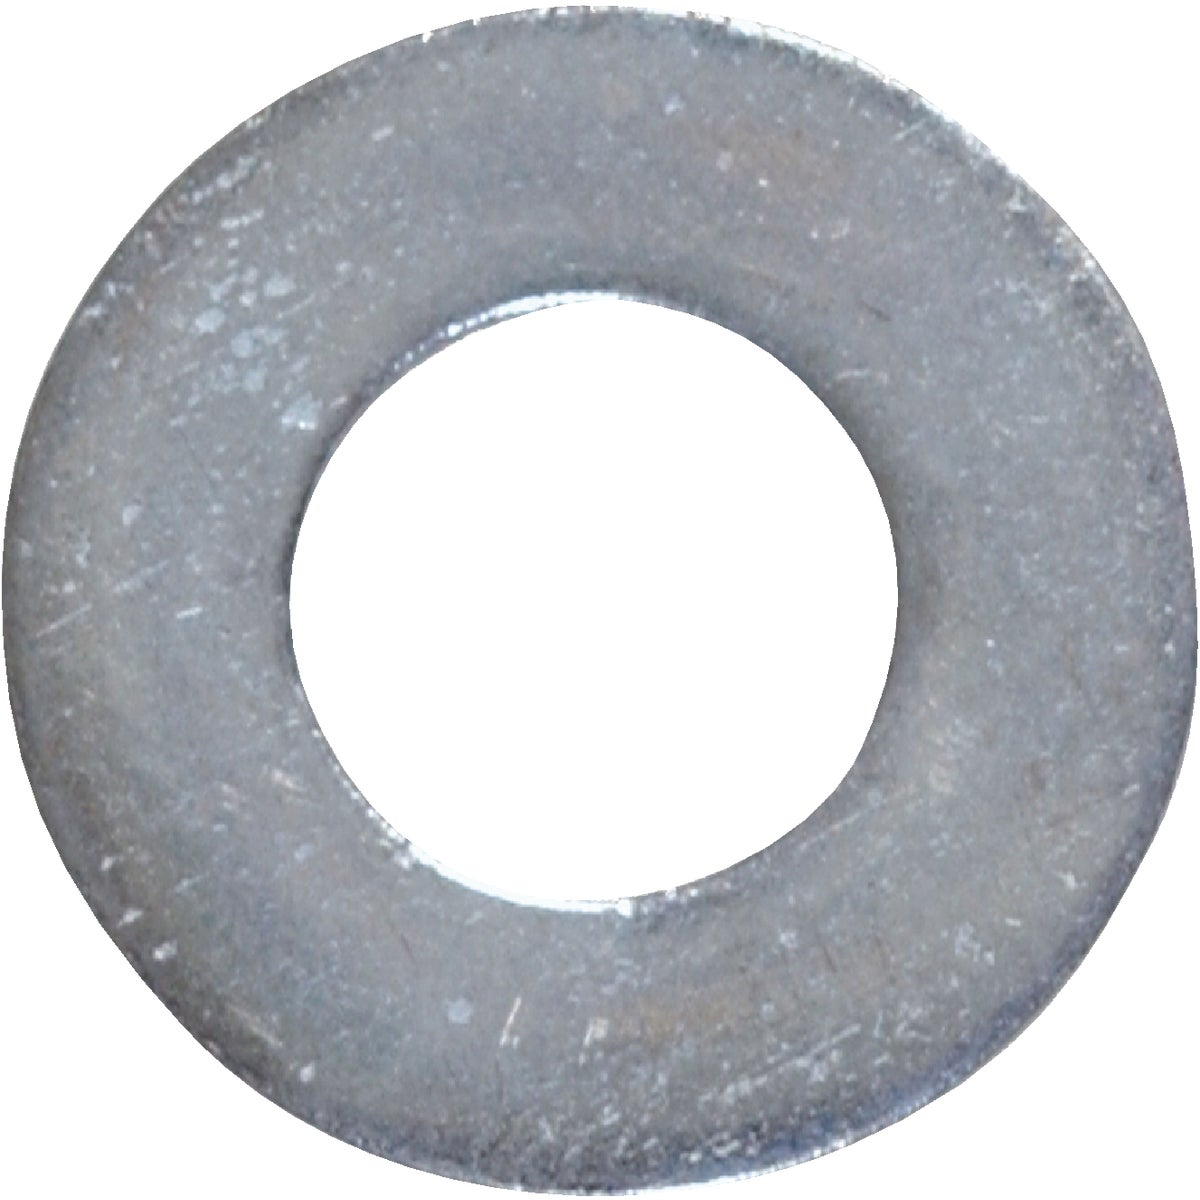 "1/4"" USS FLAT WASHER - 811070 by Hillman Fastener"